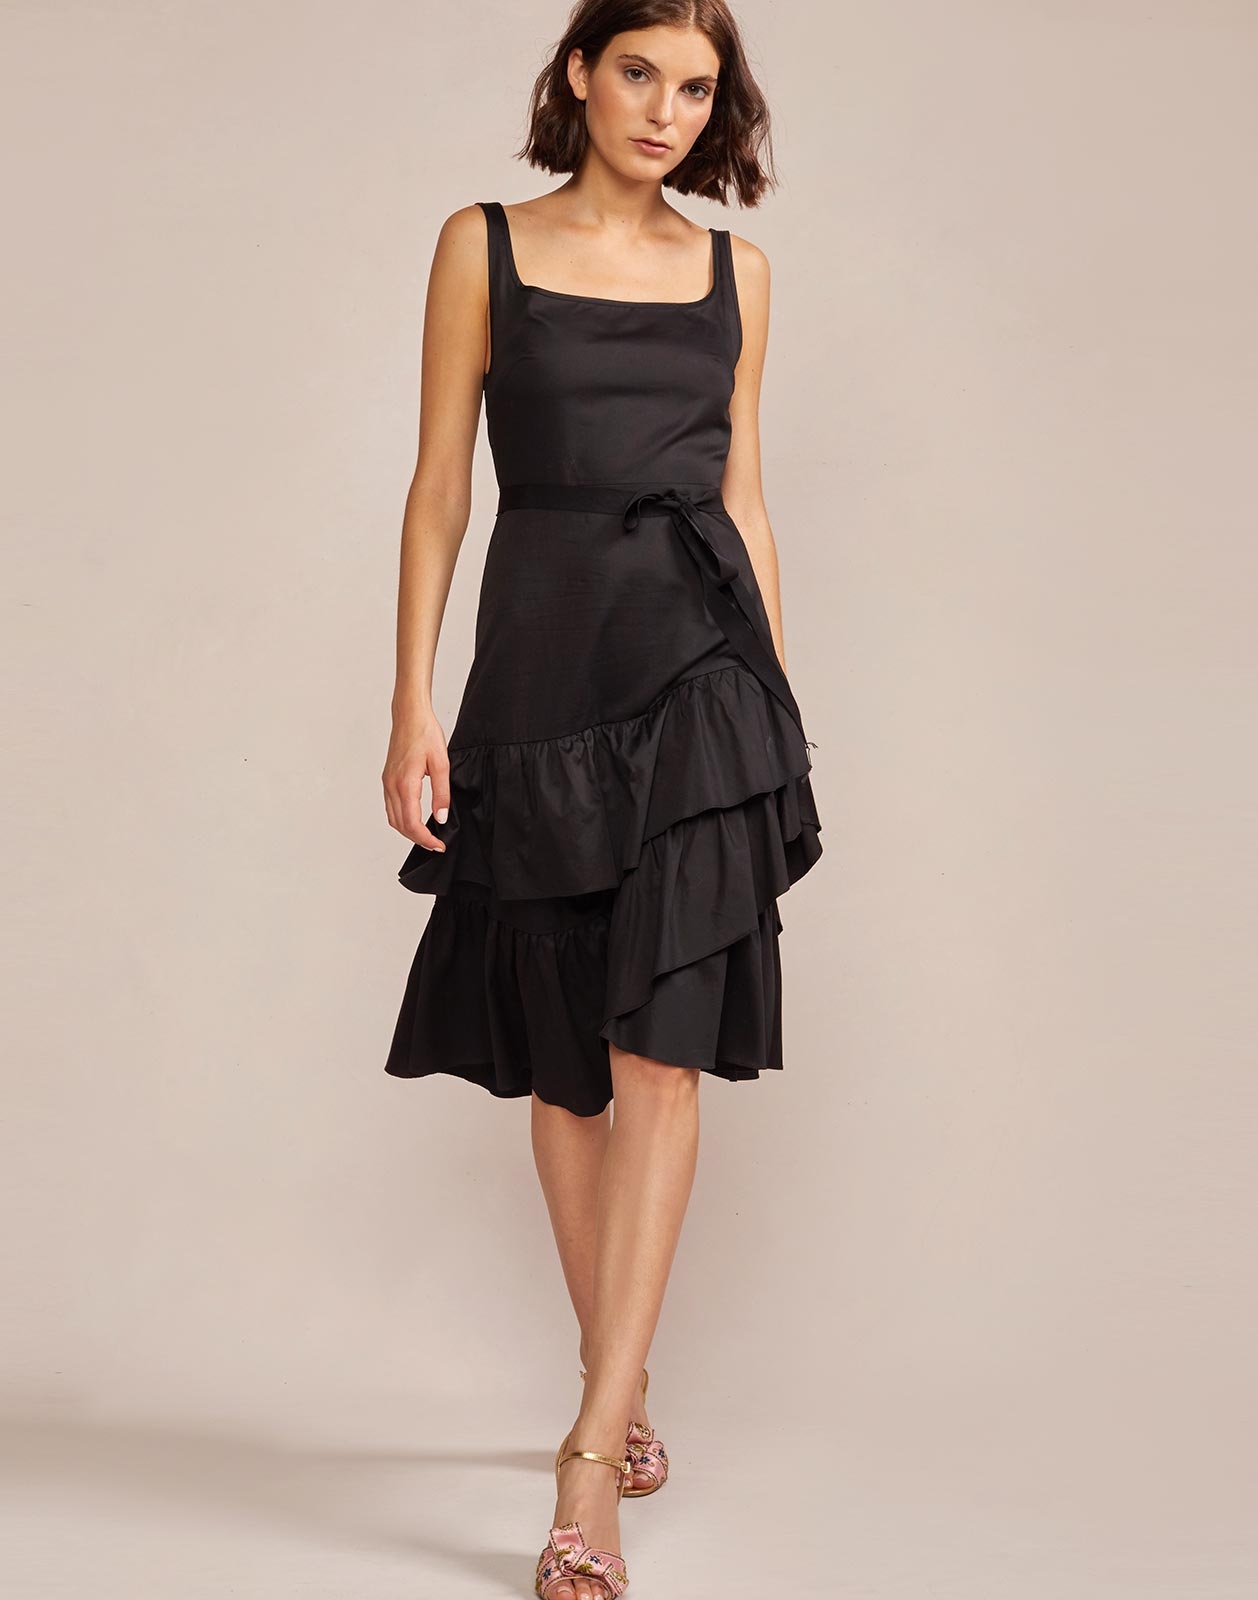 Eva Polished Cotton Ruffle Dress